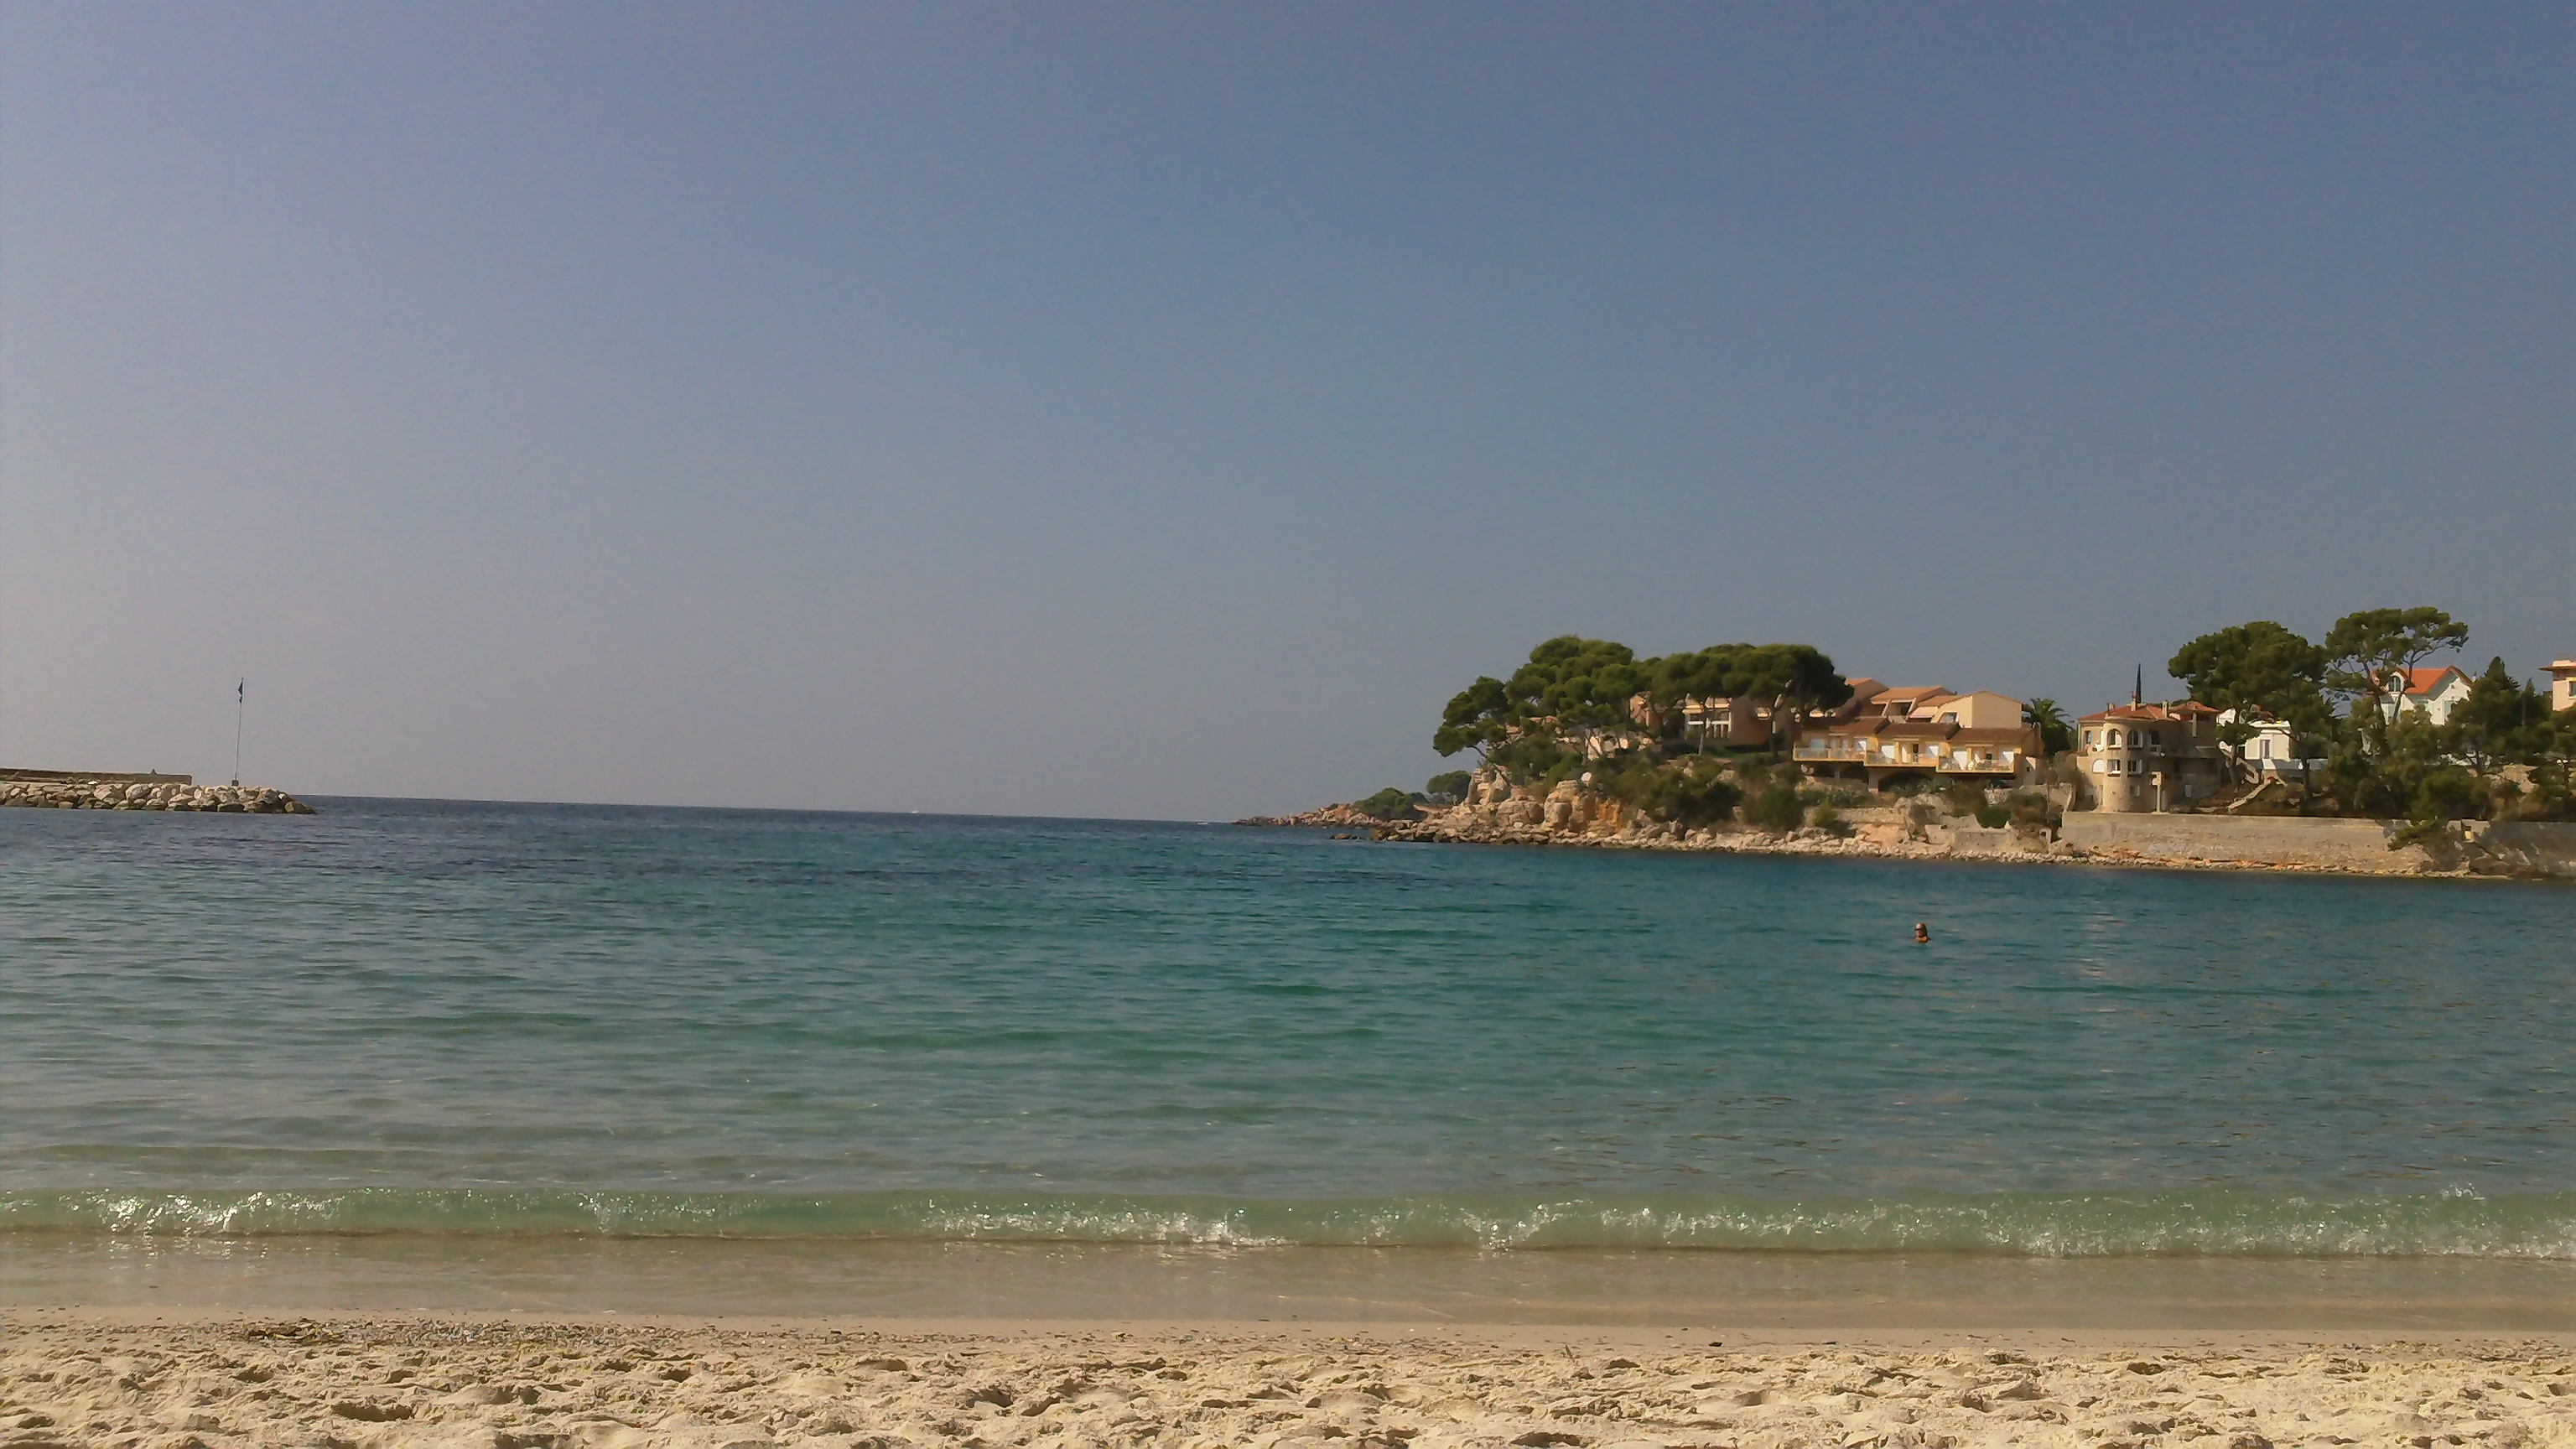 Renecros Beach in Bandol